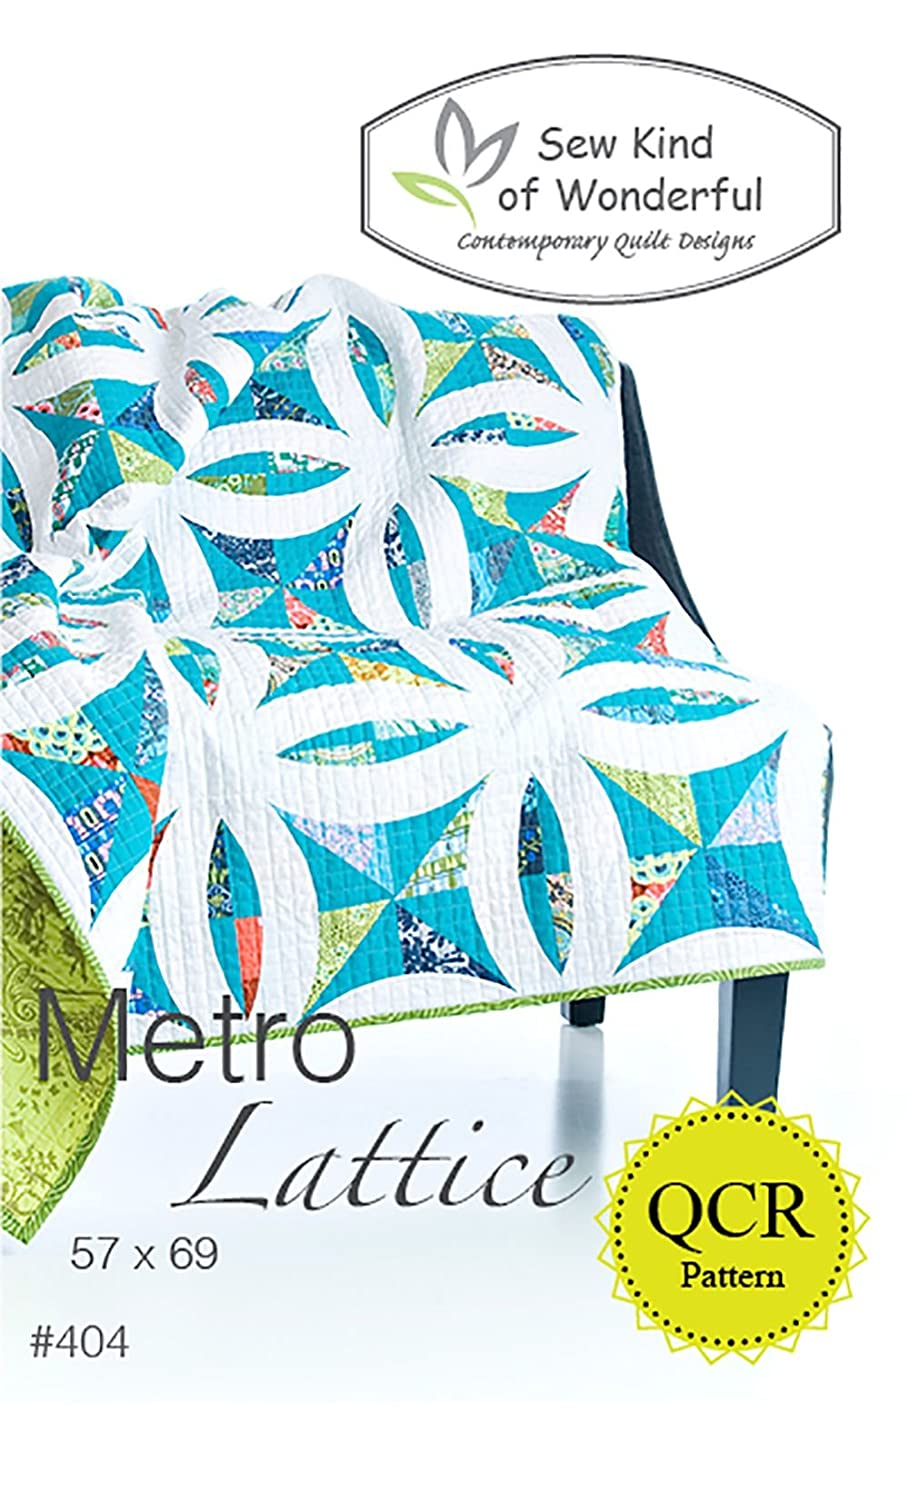 Metro Lattice Quilt Pattern: A Contemporary Quilt Design Pattern Using the Quick Curve Ruler By Sew Kind of Wonderful Jenny Pedigo 404